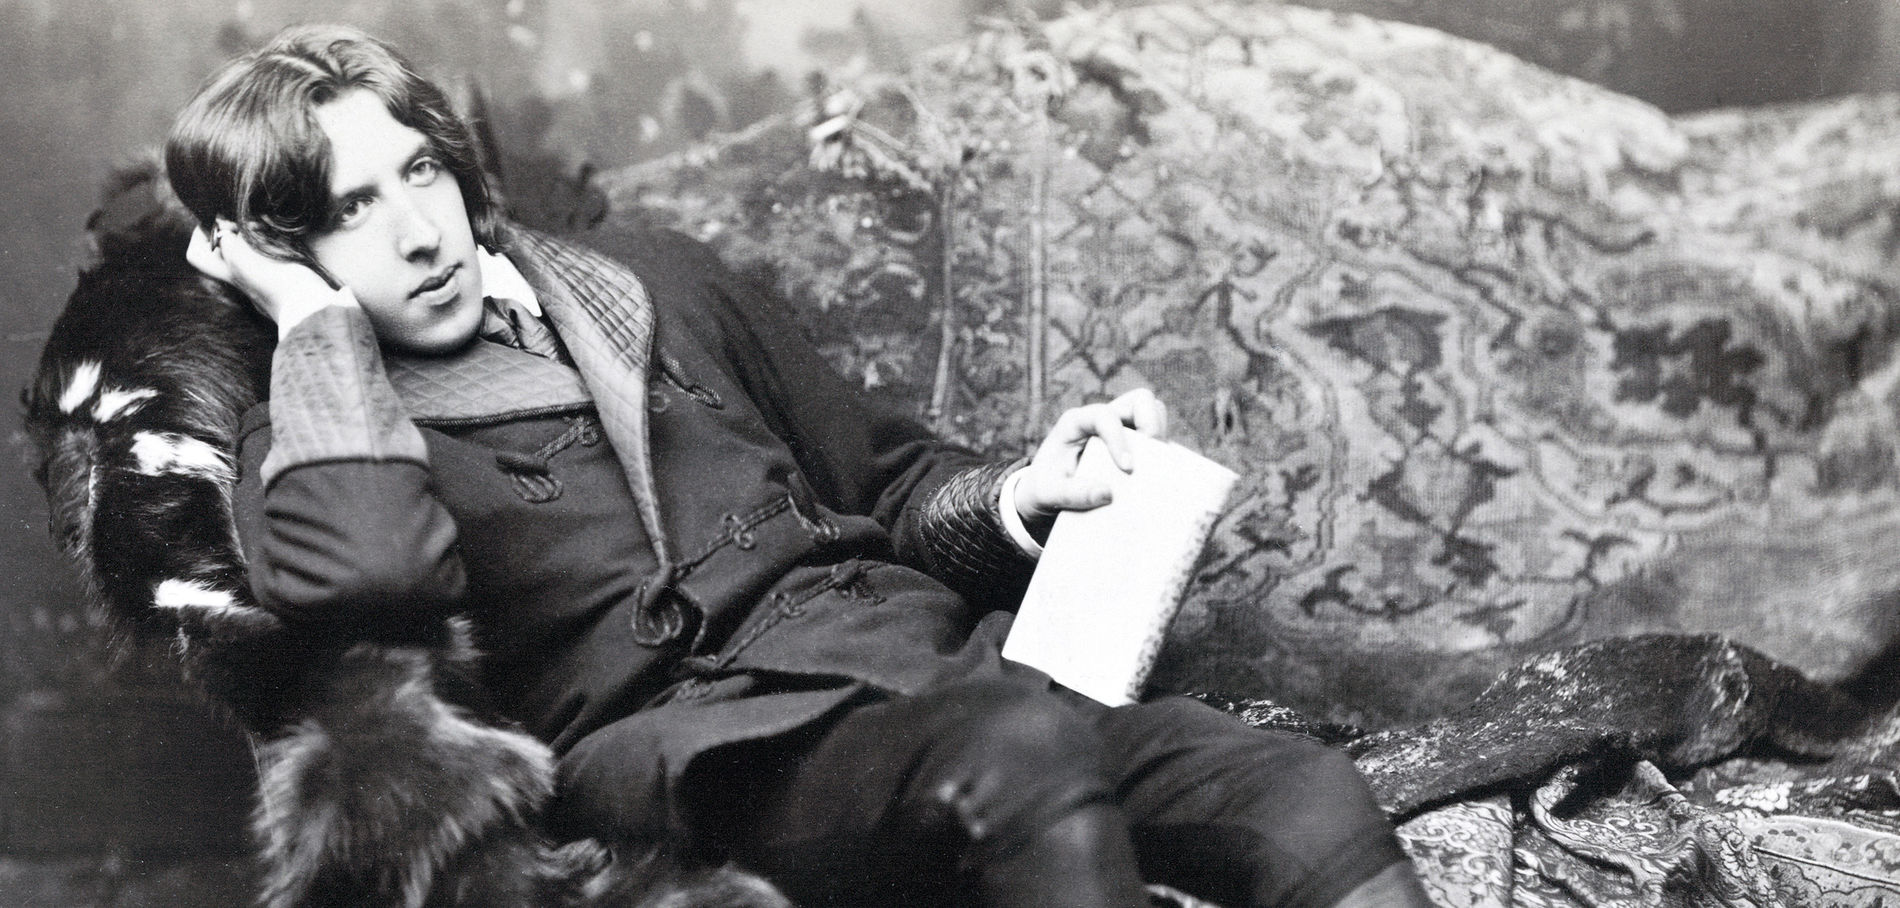 Oscar Wilde: Splendour and Misery of a Poet at the Petit Palais